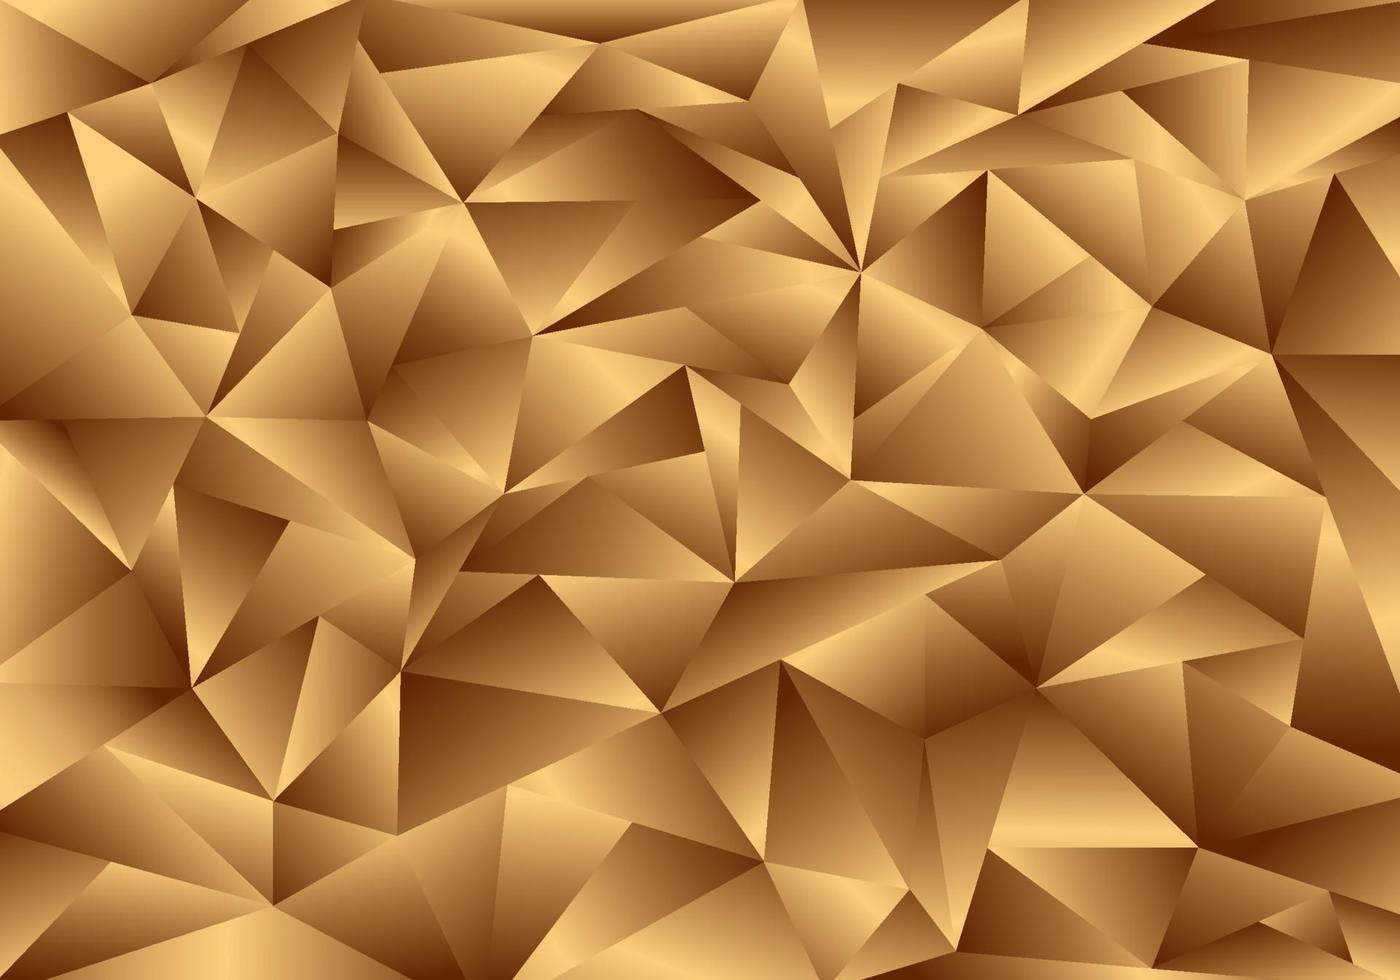 3D golden polygon background and texture. Low poly gold pattern. vector